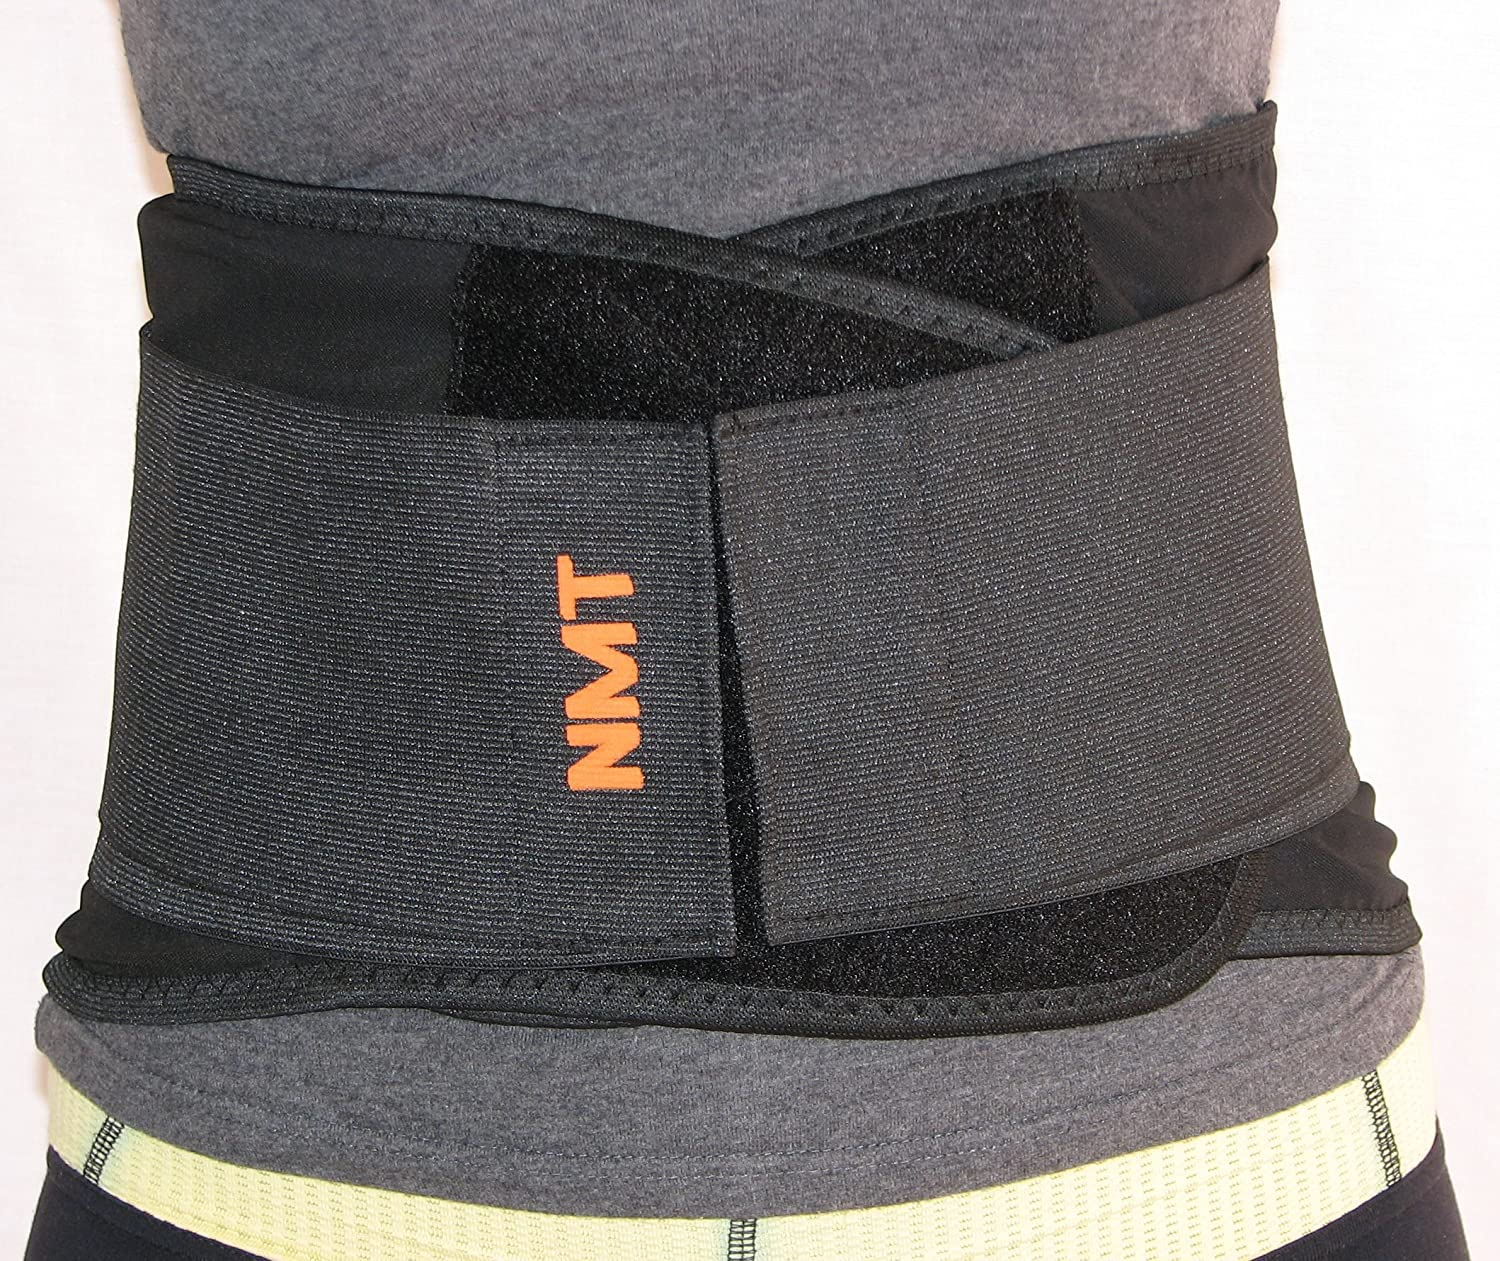 "Back Brace by NMT ~ Lumbar Support Black Belt ~ Posture Corrector ~ Arthritis, Pain Relief, Sciatica, Scoliosis ~ Physical Therapy for Women-Men ~ 4 Adjustable Sizes- 'M' Fits Waist 28-34"" (71-86cm)"